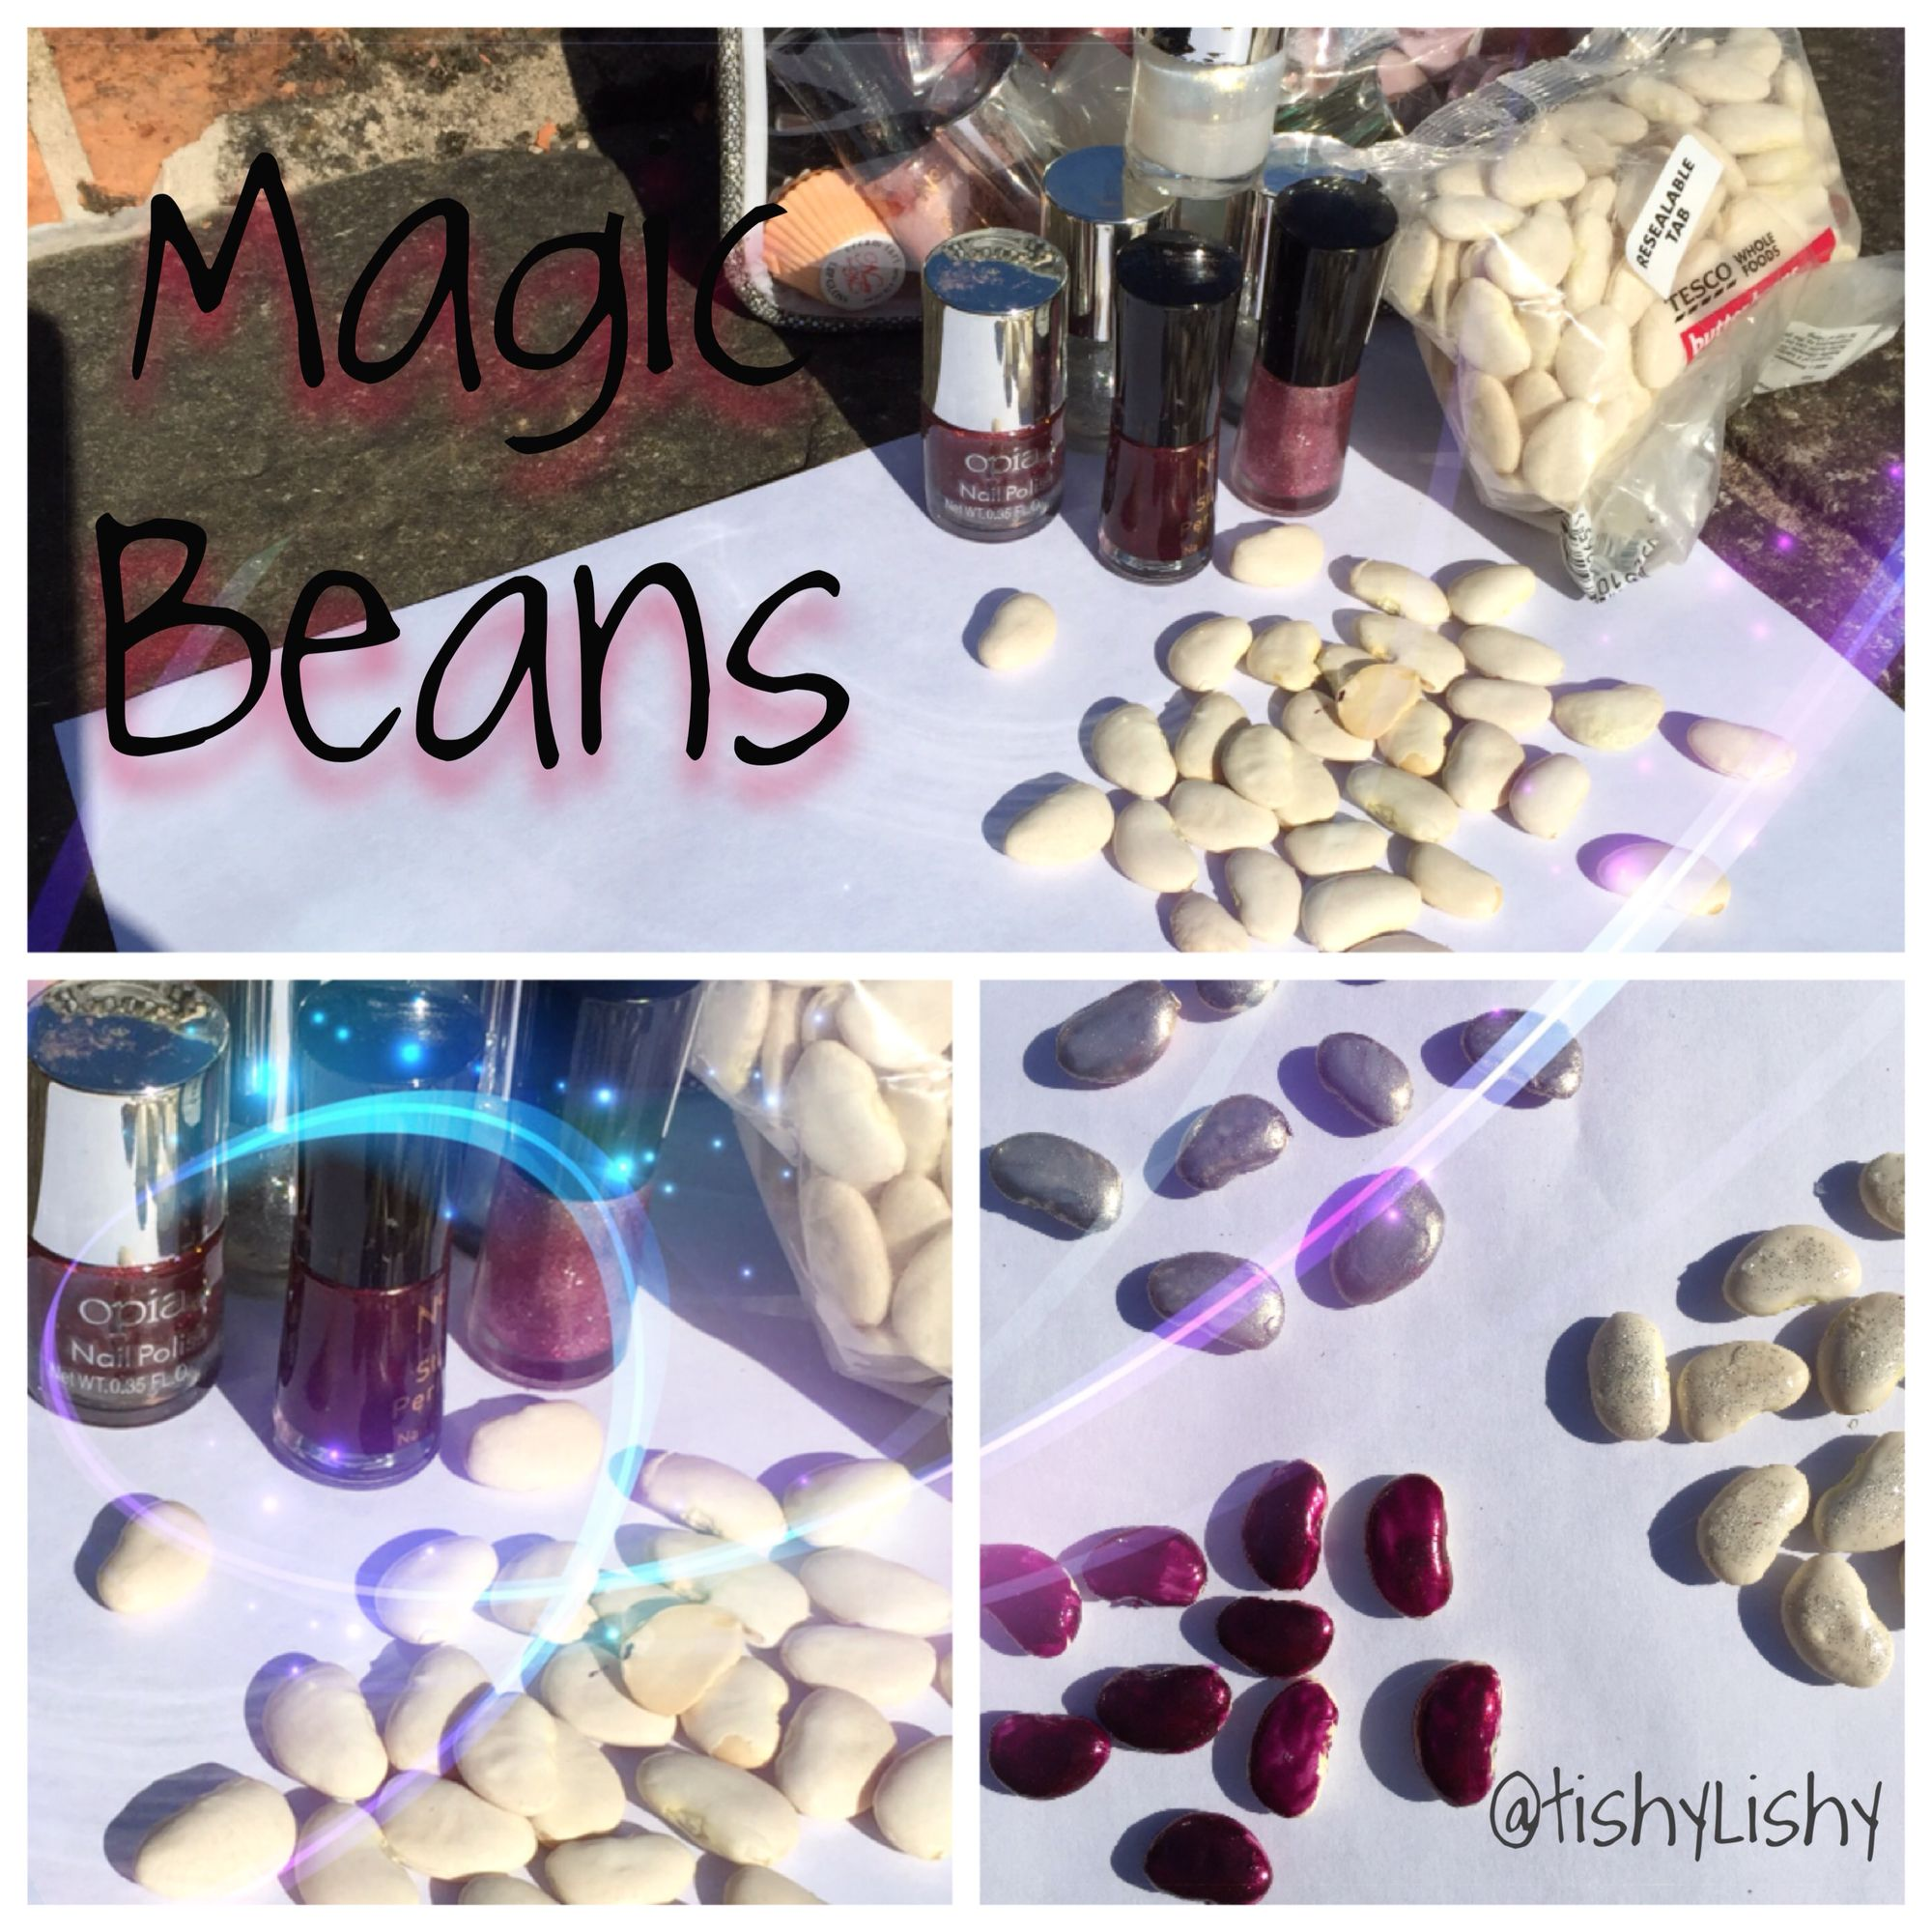 Magic Beans Butter Beans Coated In Nail Varnish Ready For Our Jack And The Beanstalk Week